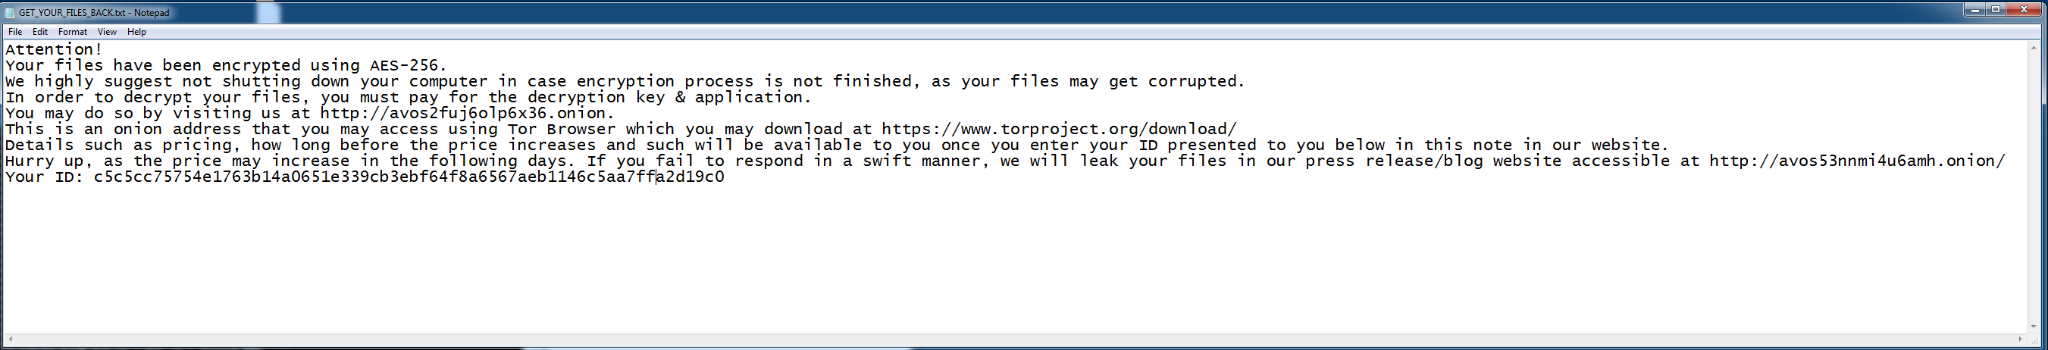 """AvosLocker ransome note, from the Get_Your_Files_Back.txt file: """"Attnetion! Your files have been encrypted using AES-256. We highly suggest not shutting down your computer in case encryption process is not finished, as your files may get corrupted. In order to decrypt your files, you must pay for the decryption key & application."""" The note goes on from there to explain the process a victim can use to contact the ransomware operators."""